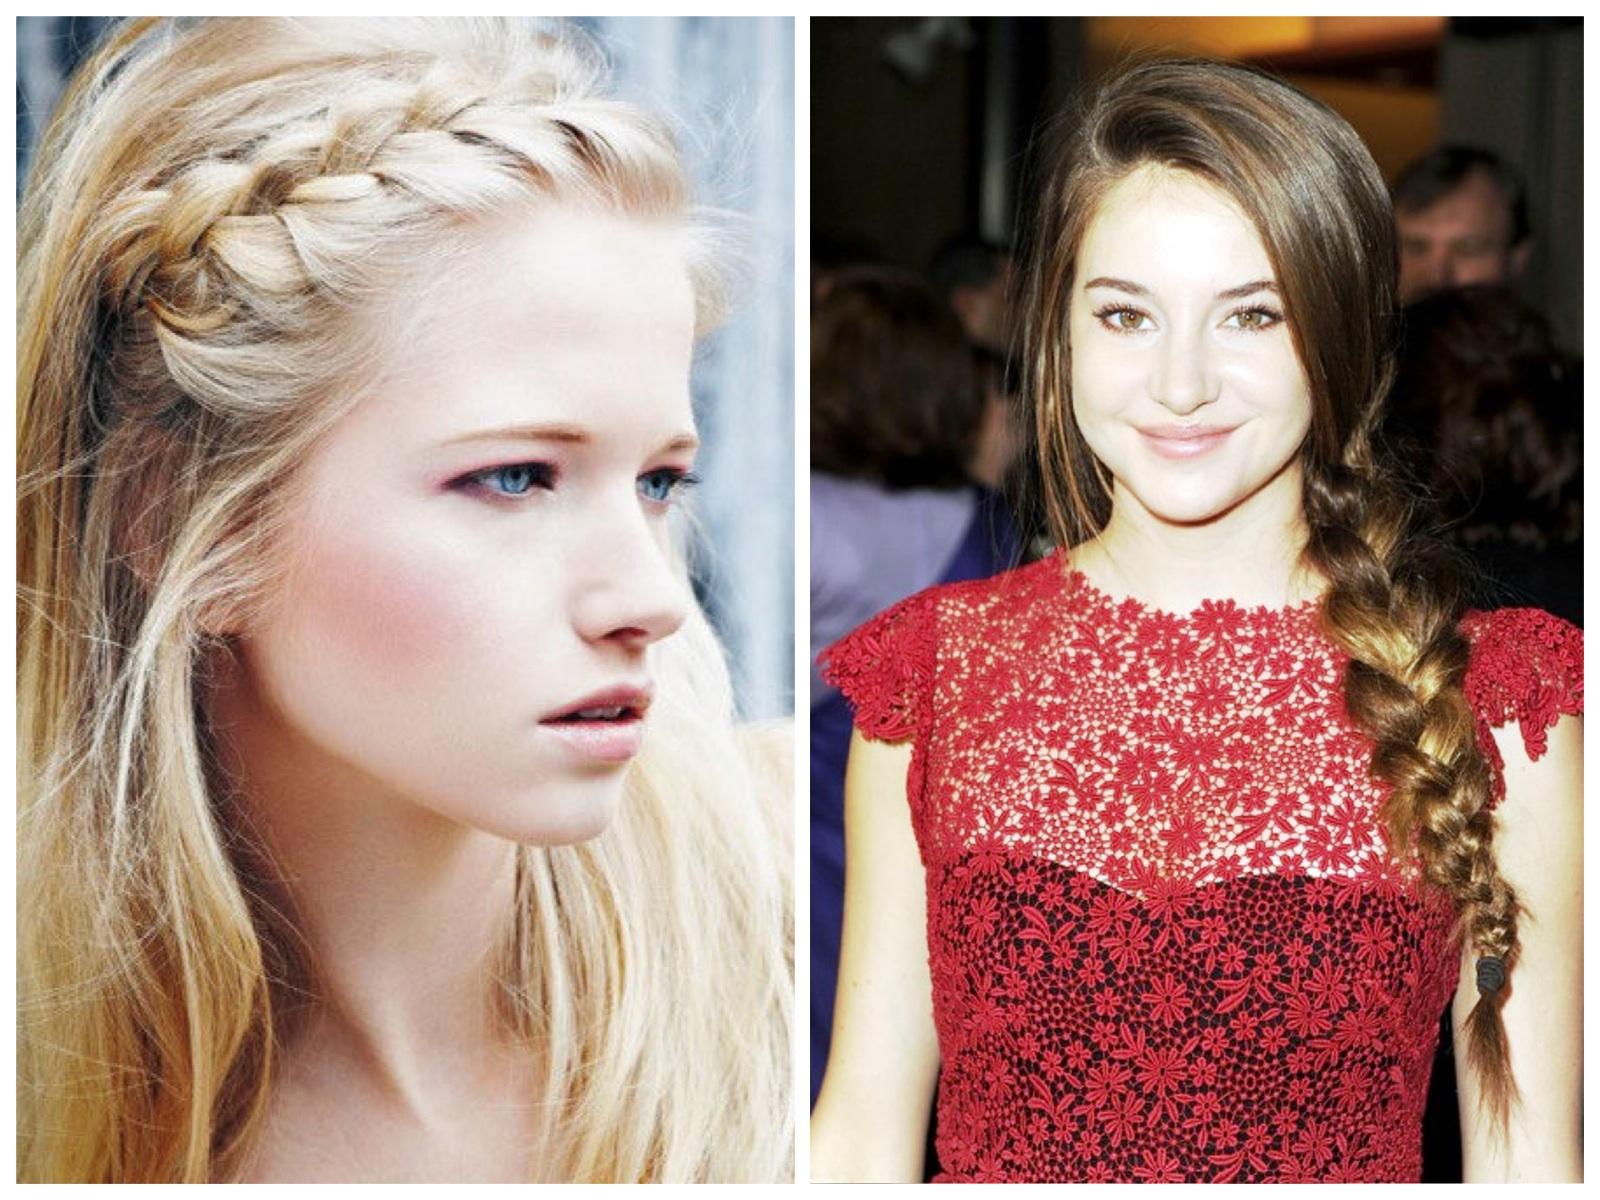 Coiffure Tresse Devant Shailene Woodley Glitters And Fashion